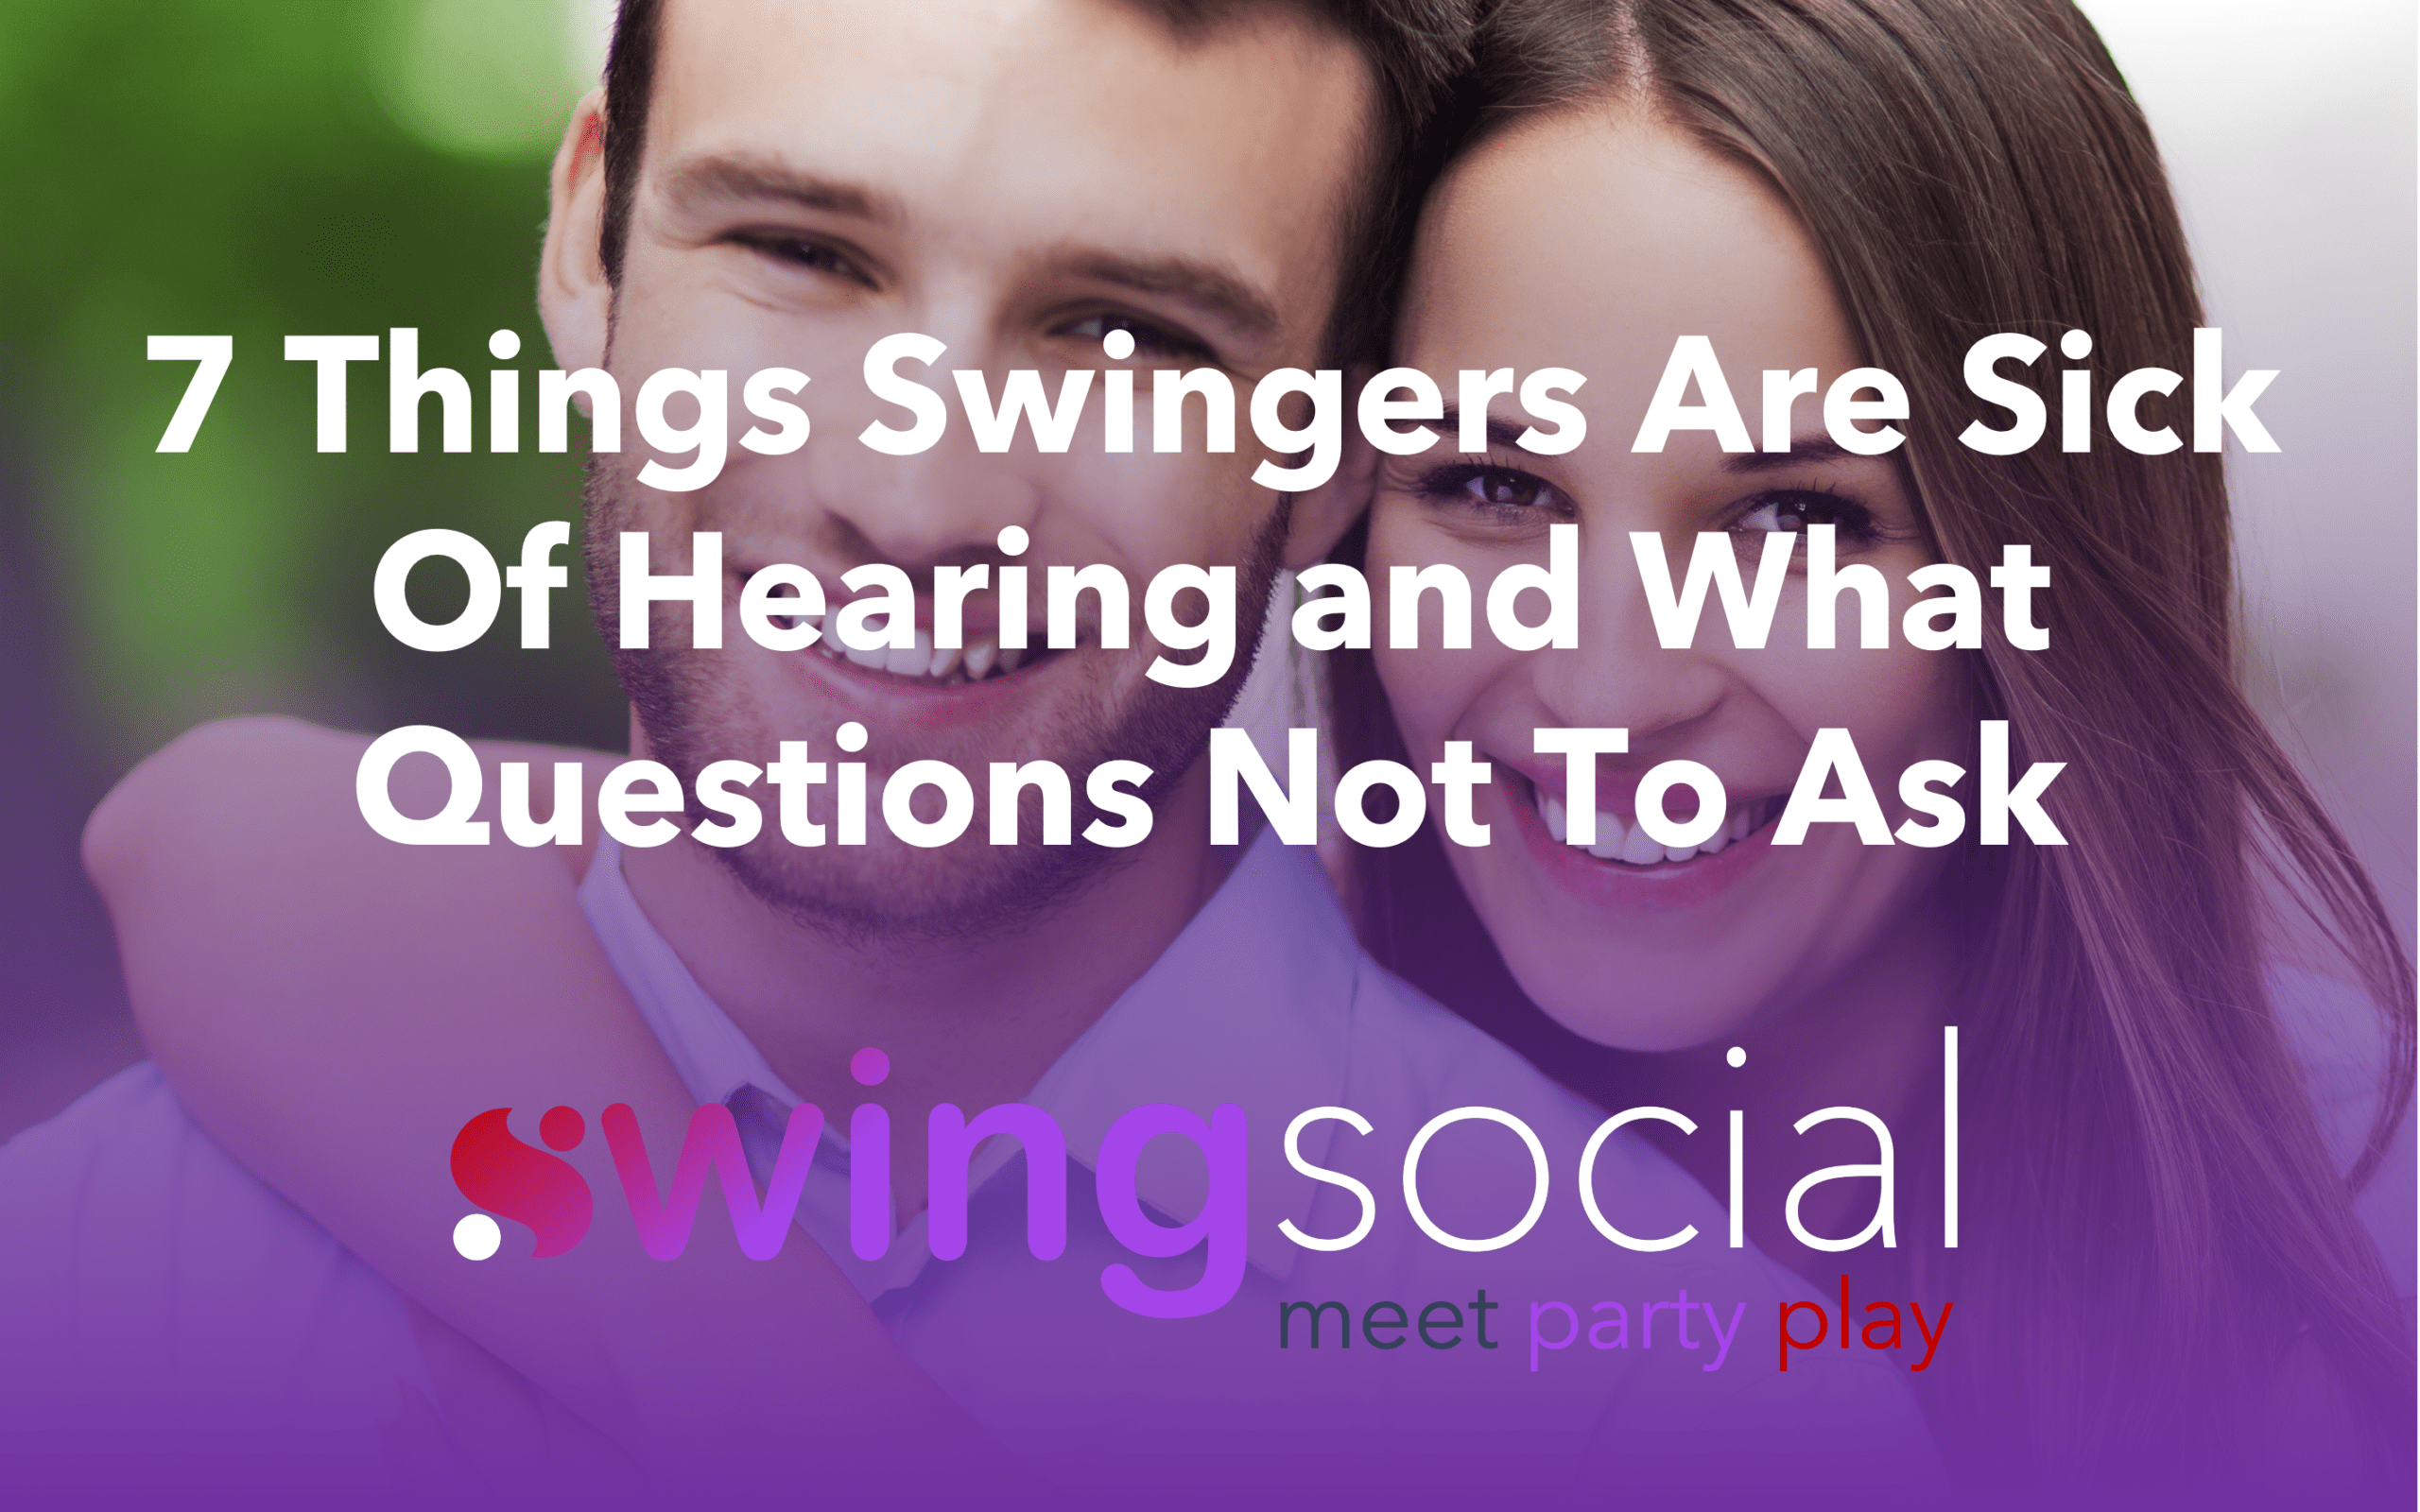 7 Things Swingers Are Sick Of Hearing and What Questions Not To Ask